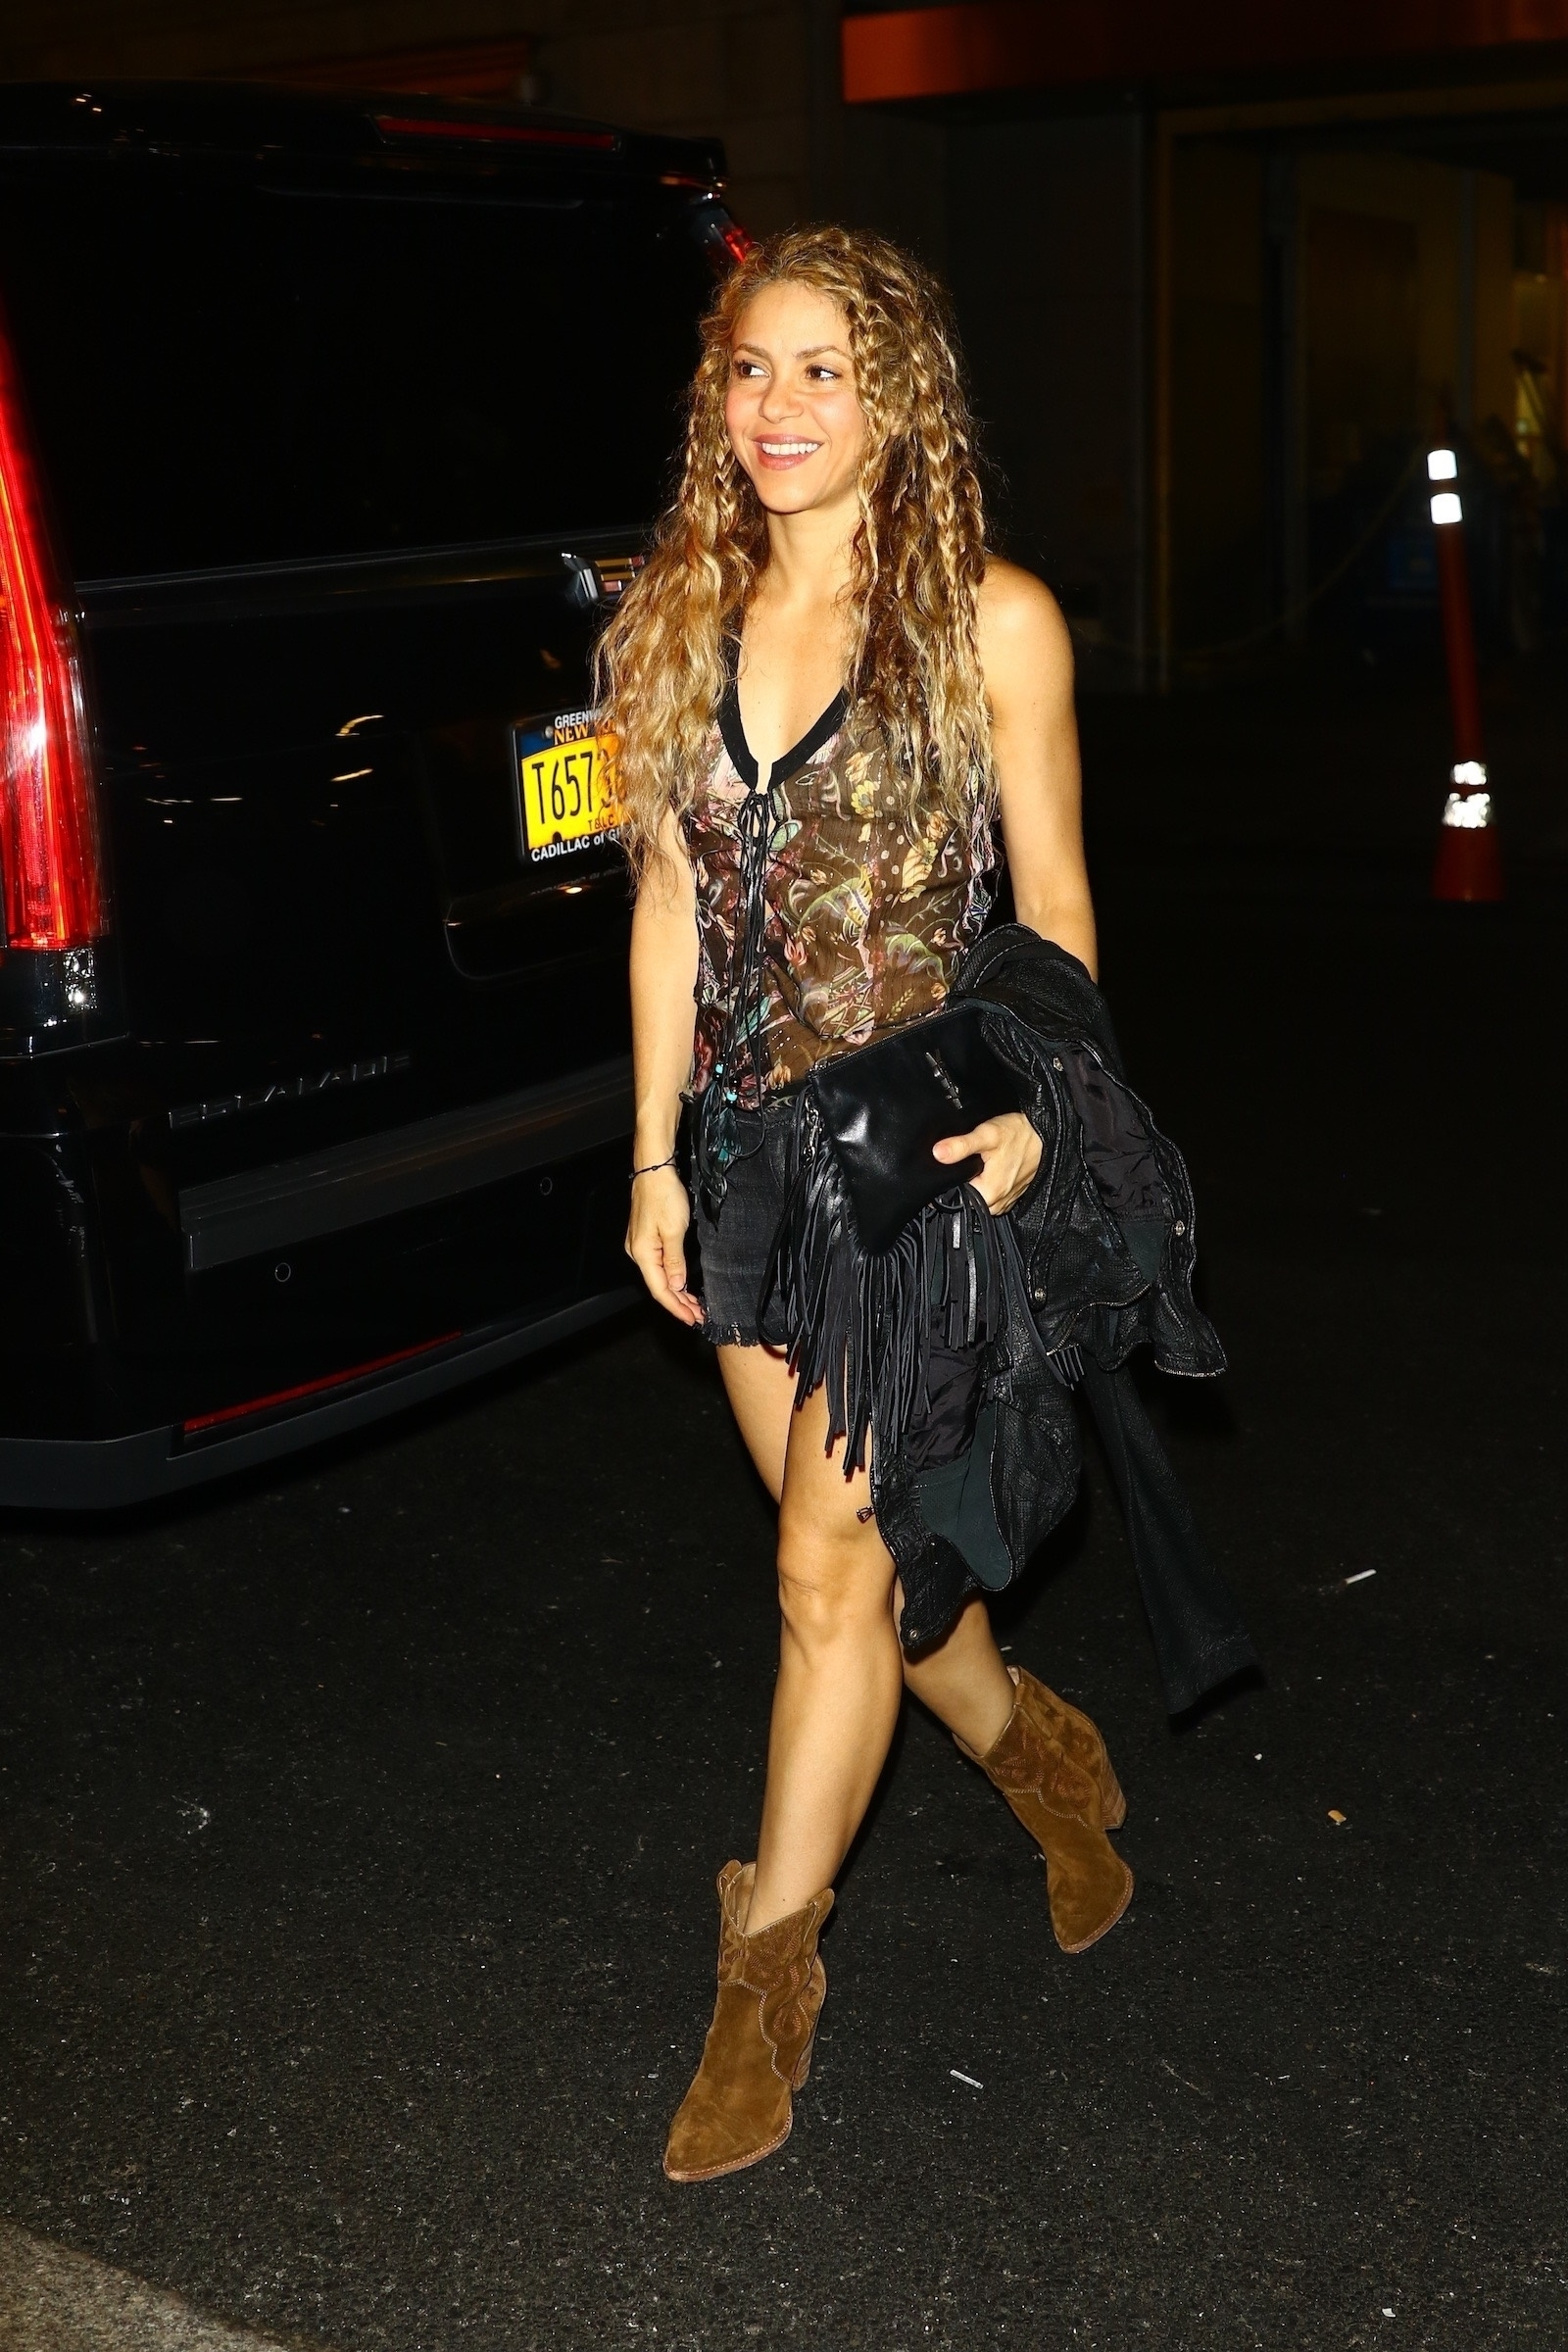 78215232_shakira-in-new-york-20180809-8.jpg